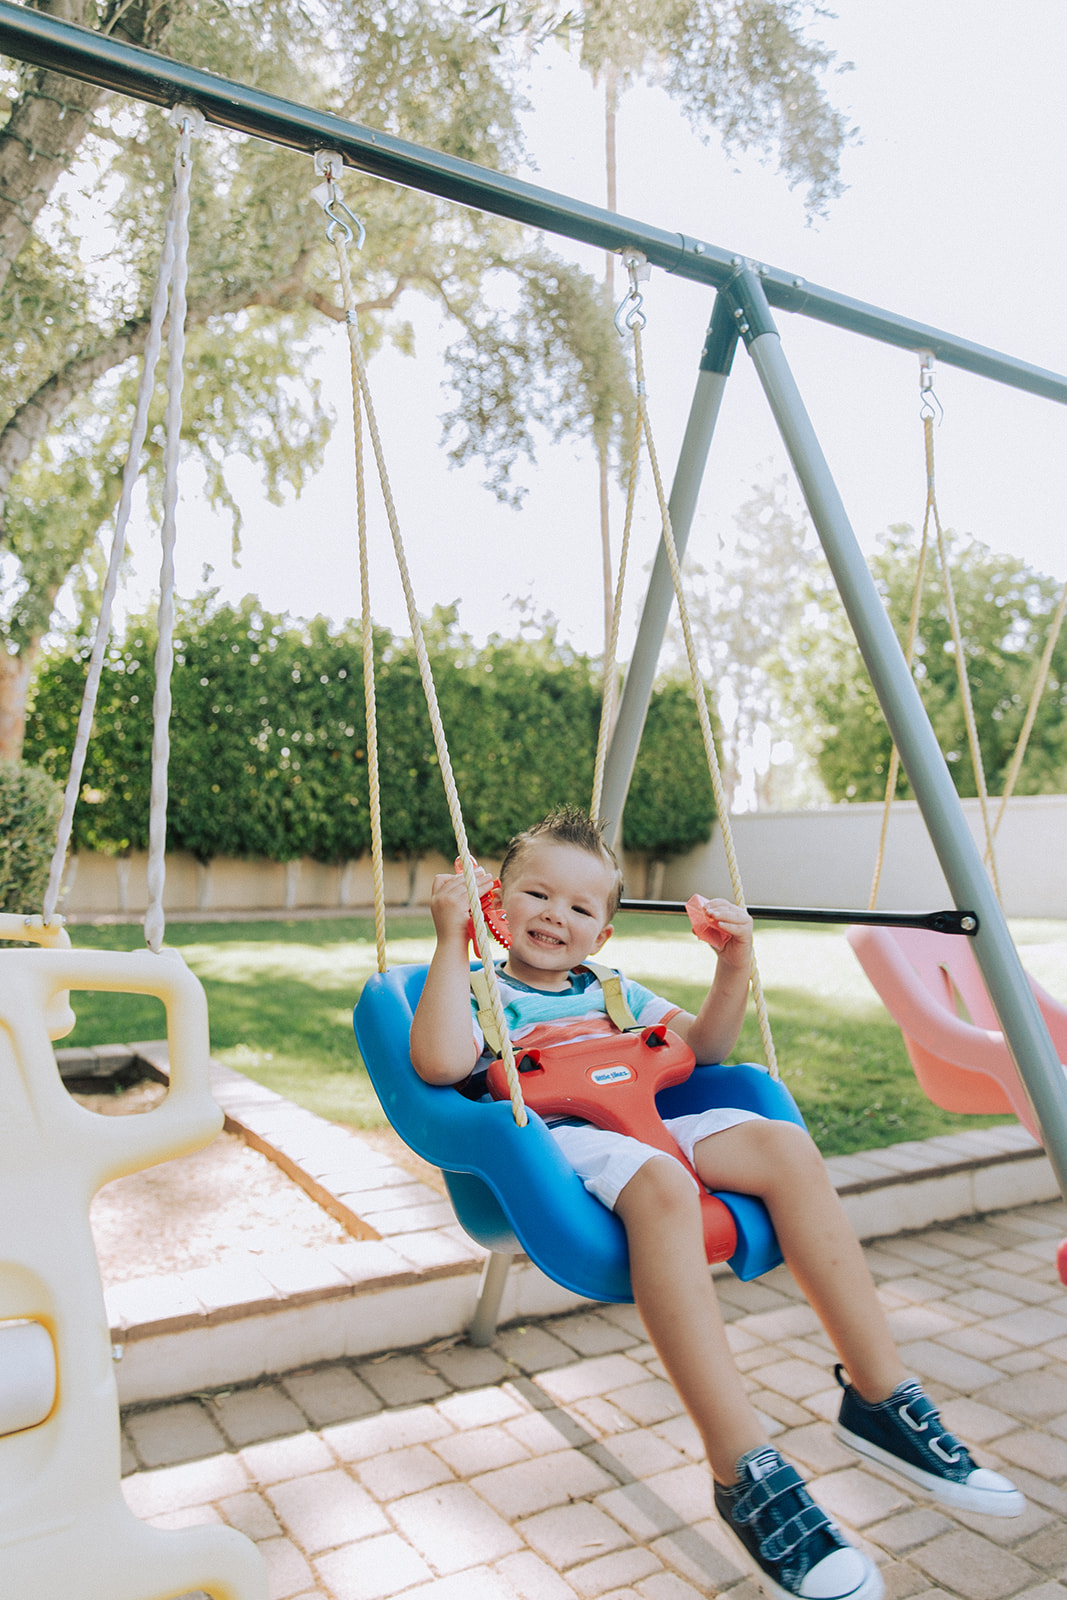 Diego smiling while swinging on a swing.